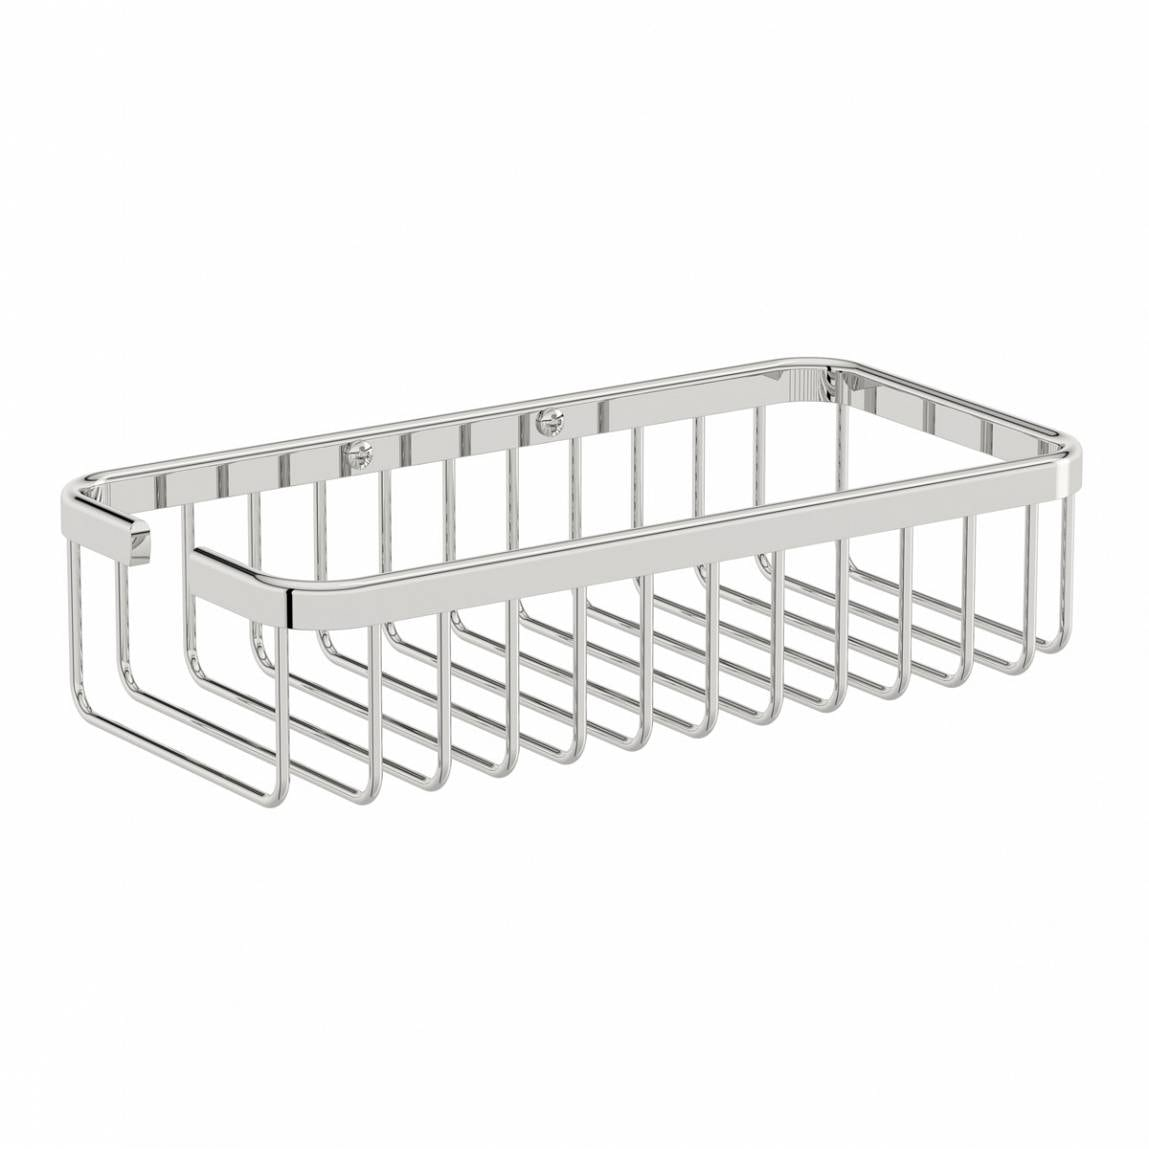 Orchard Options brass single rectangular shower caddy